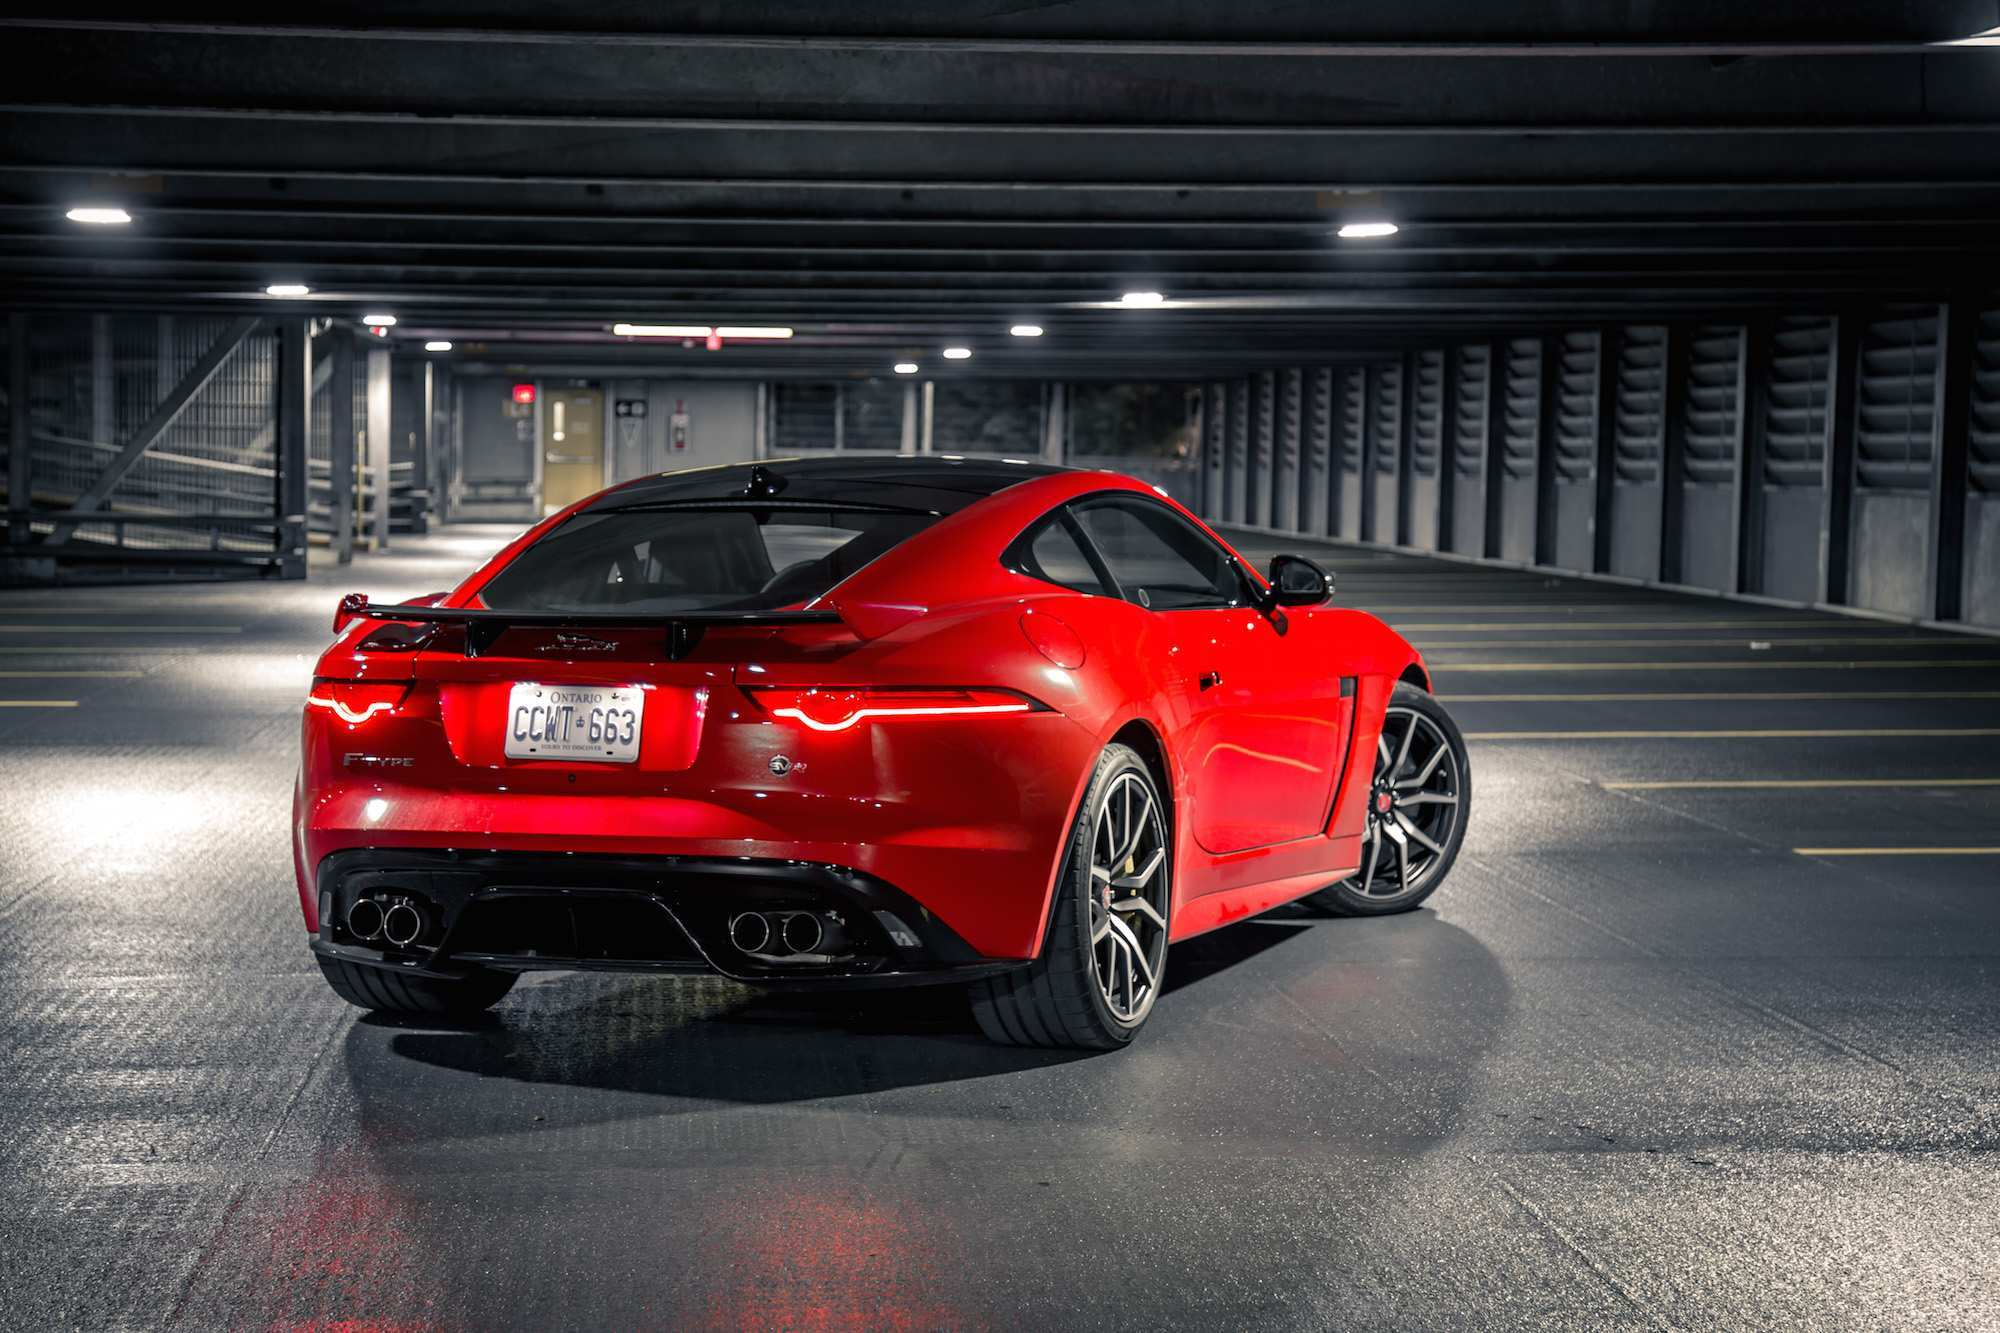 89 Best Jaguar Svr 2019 Images